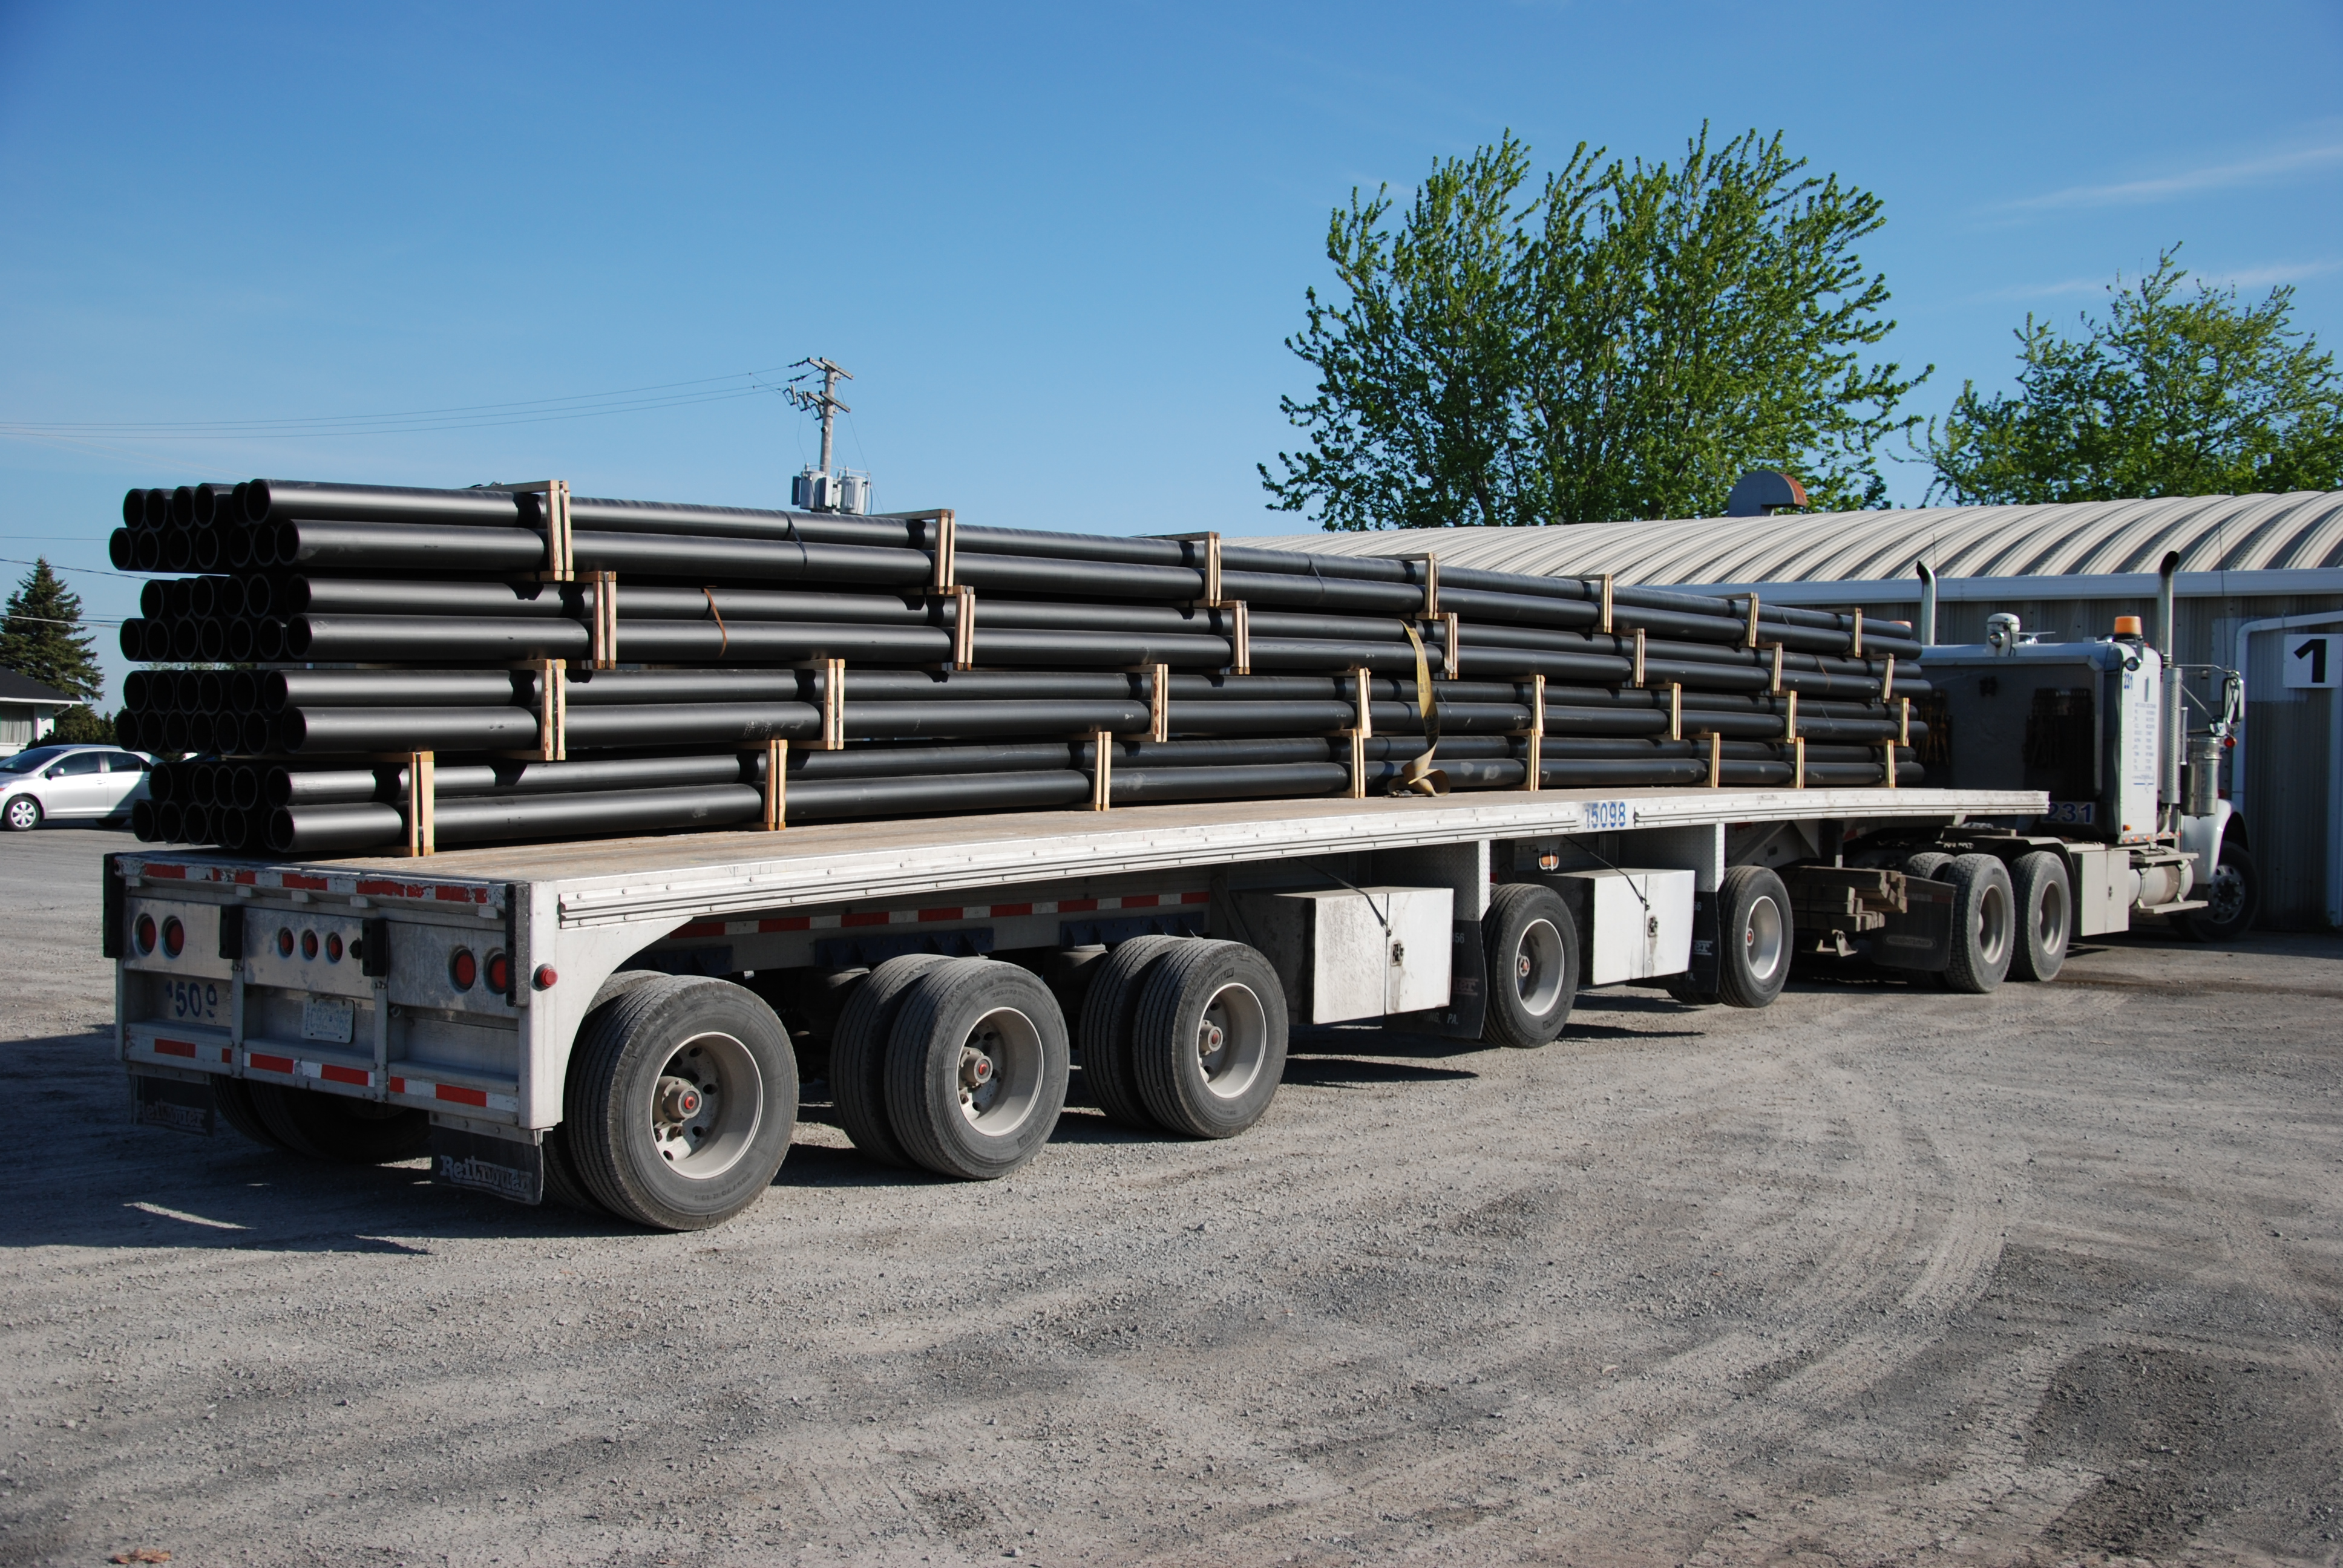 Hdpe Pipe For Rural Water Supply Project Ace Flowtech